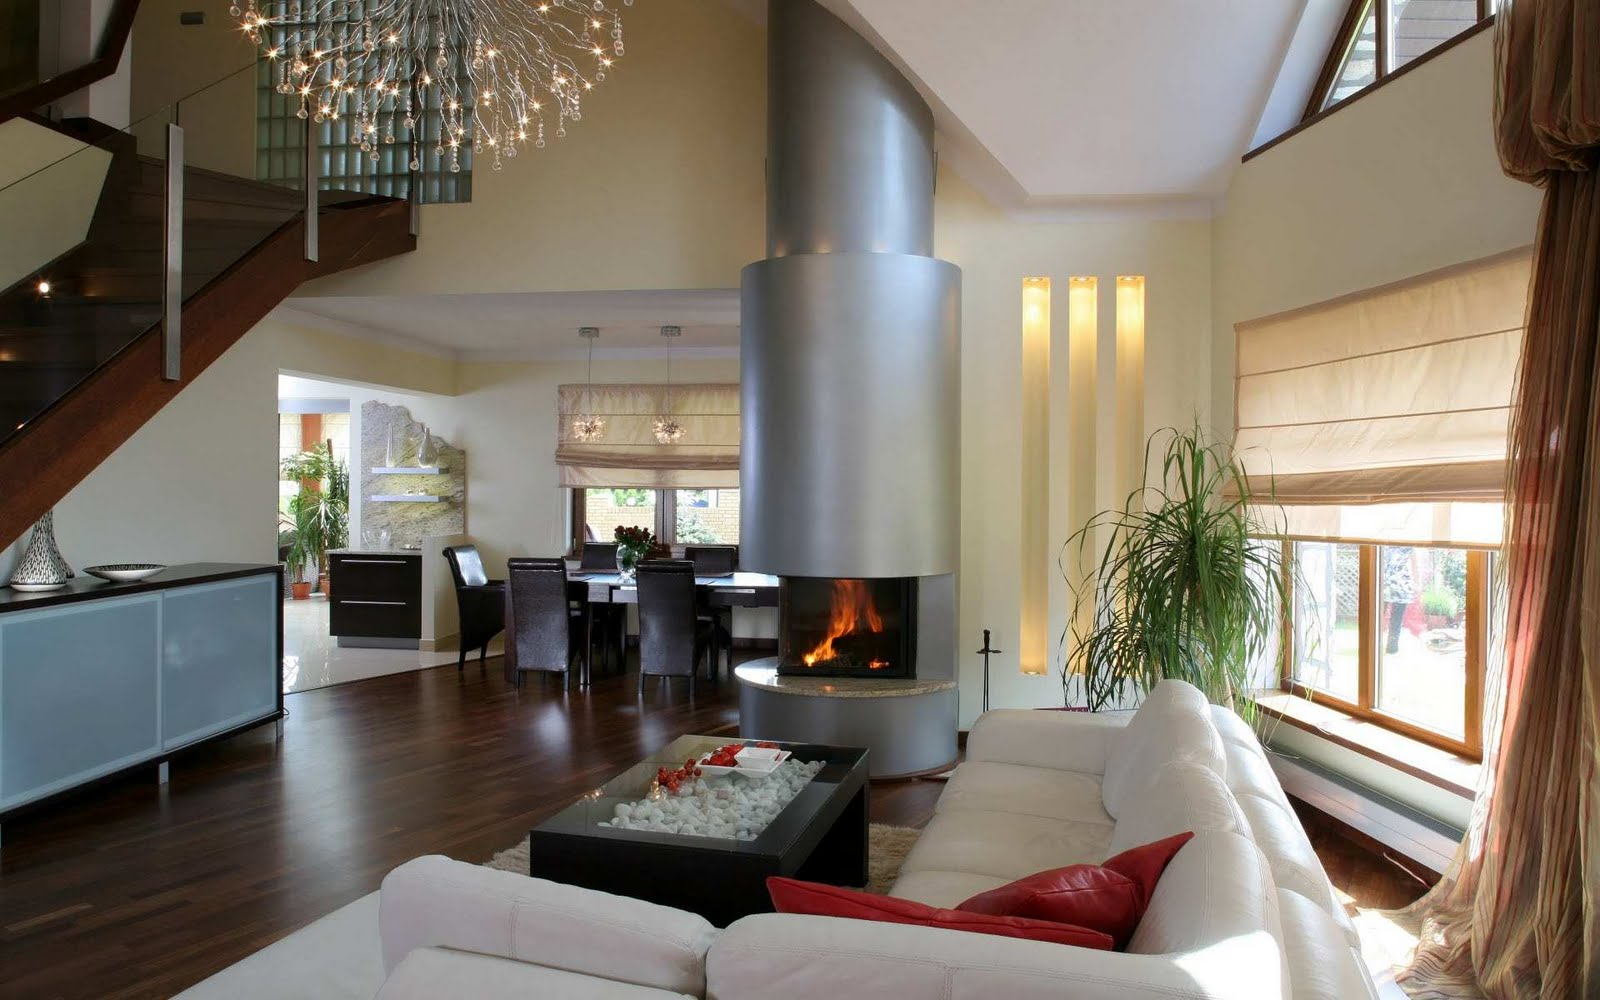 10 salas modernas con chimenea ideas para decorar for Amazing house interior designs